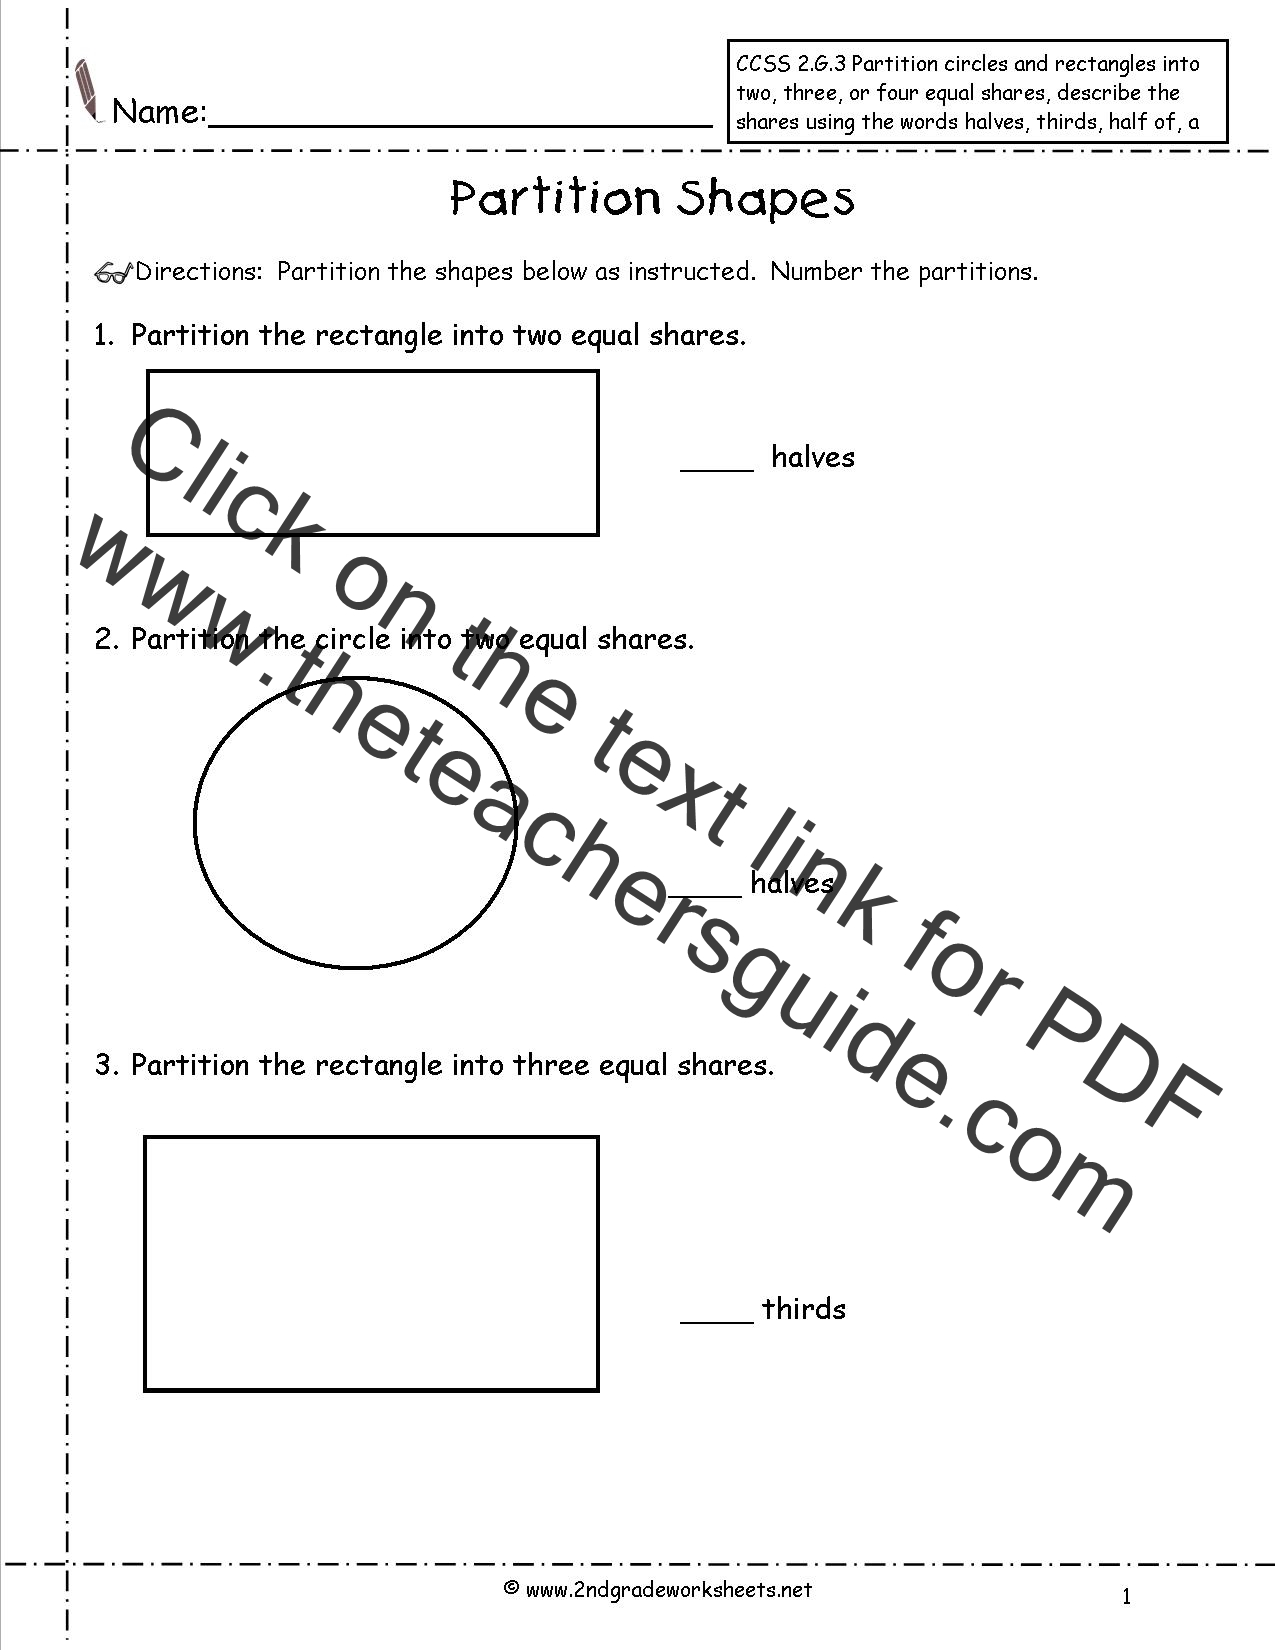 CCSS 2.G.3 Worksheets, Partition Shapes